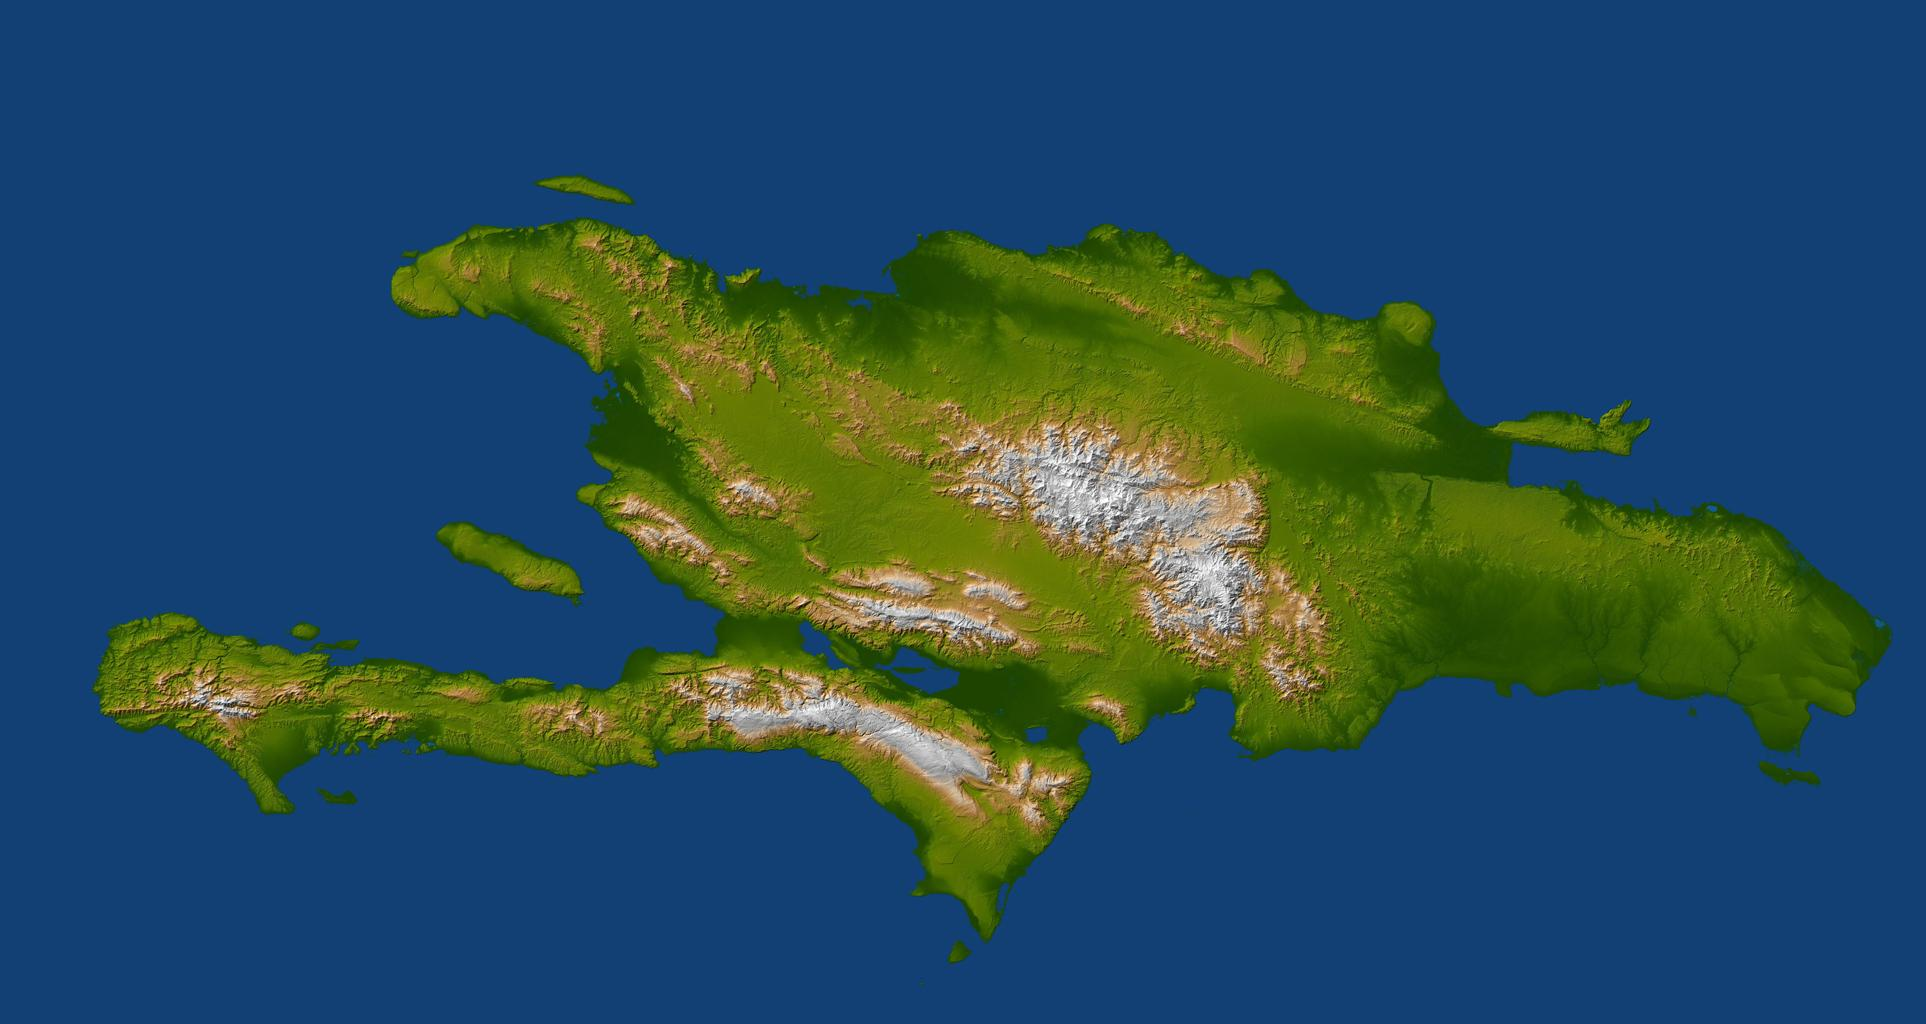 This image, produced from instrument data aboard NASA's Space Shuttle Endeavour, is a perspective view of the topography of Port-au-Prince, Haiti and Hispianola. A magnitude 7.0 earthquake occurred on Haiti on January 12, 2010.